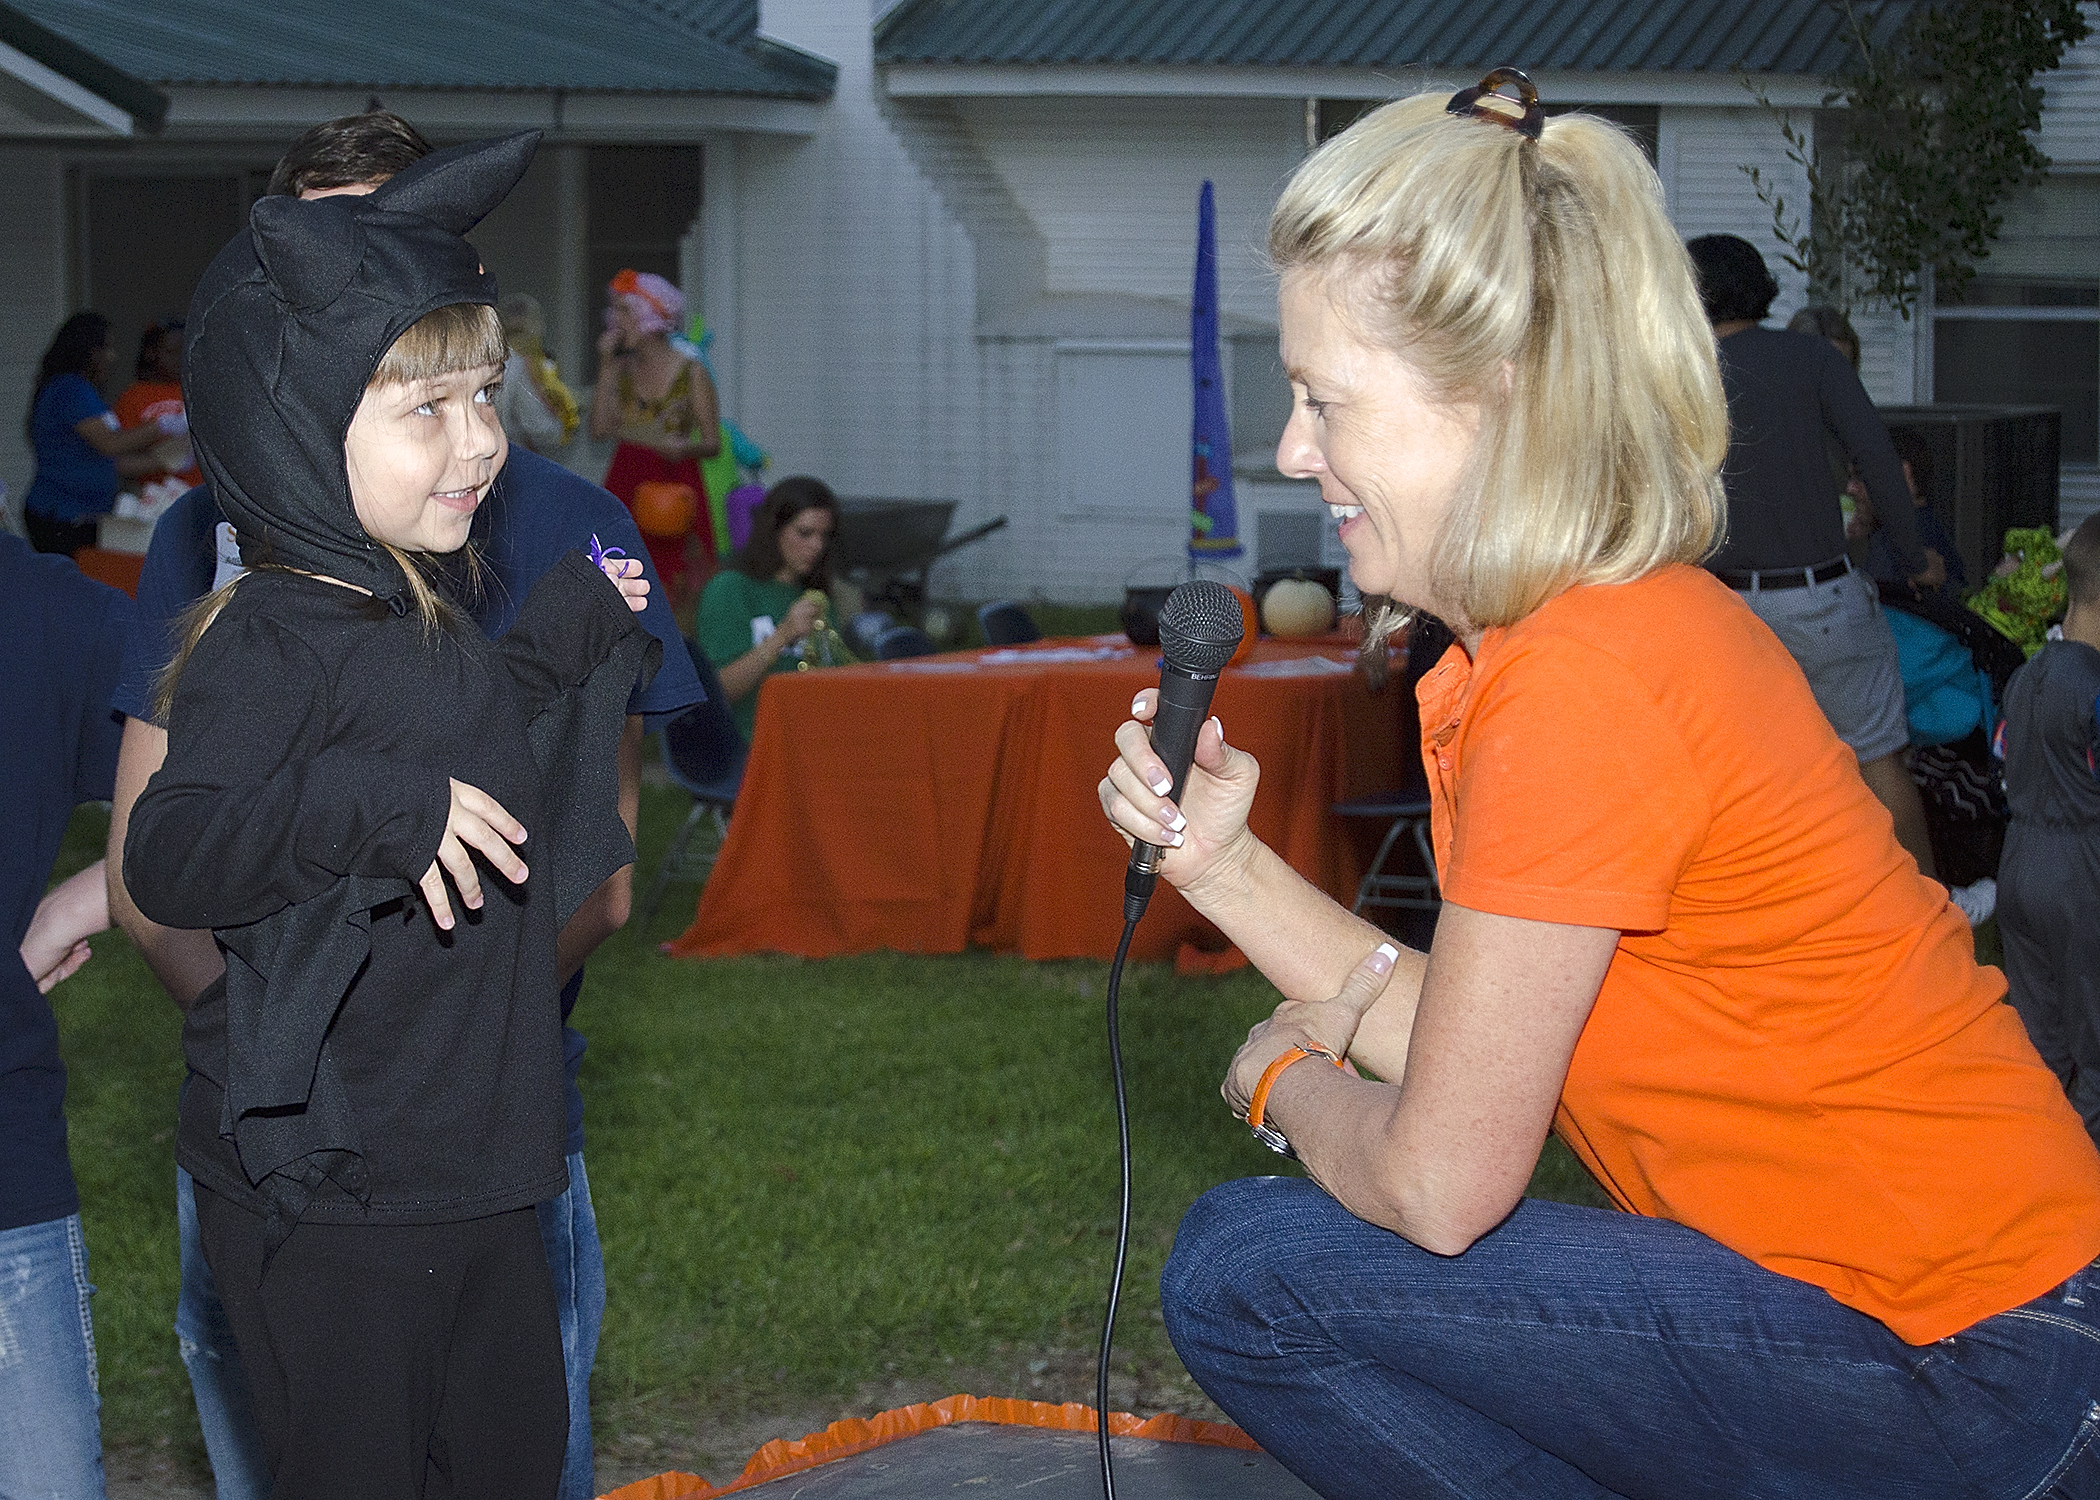 President Hoyt talking to child dressed as a bat